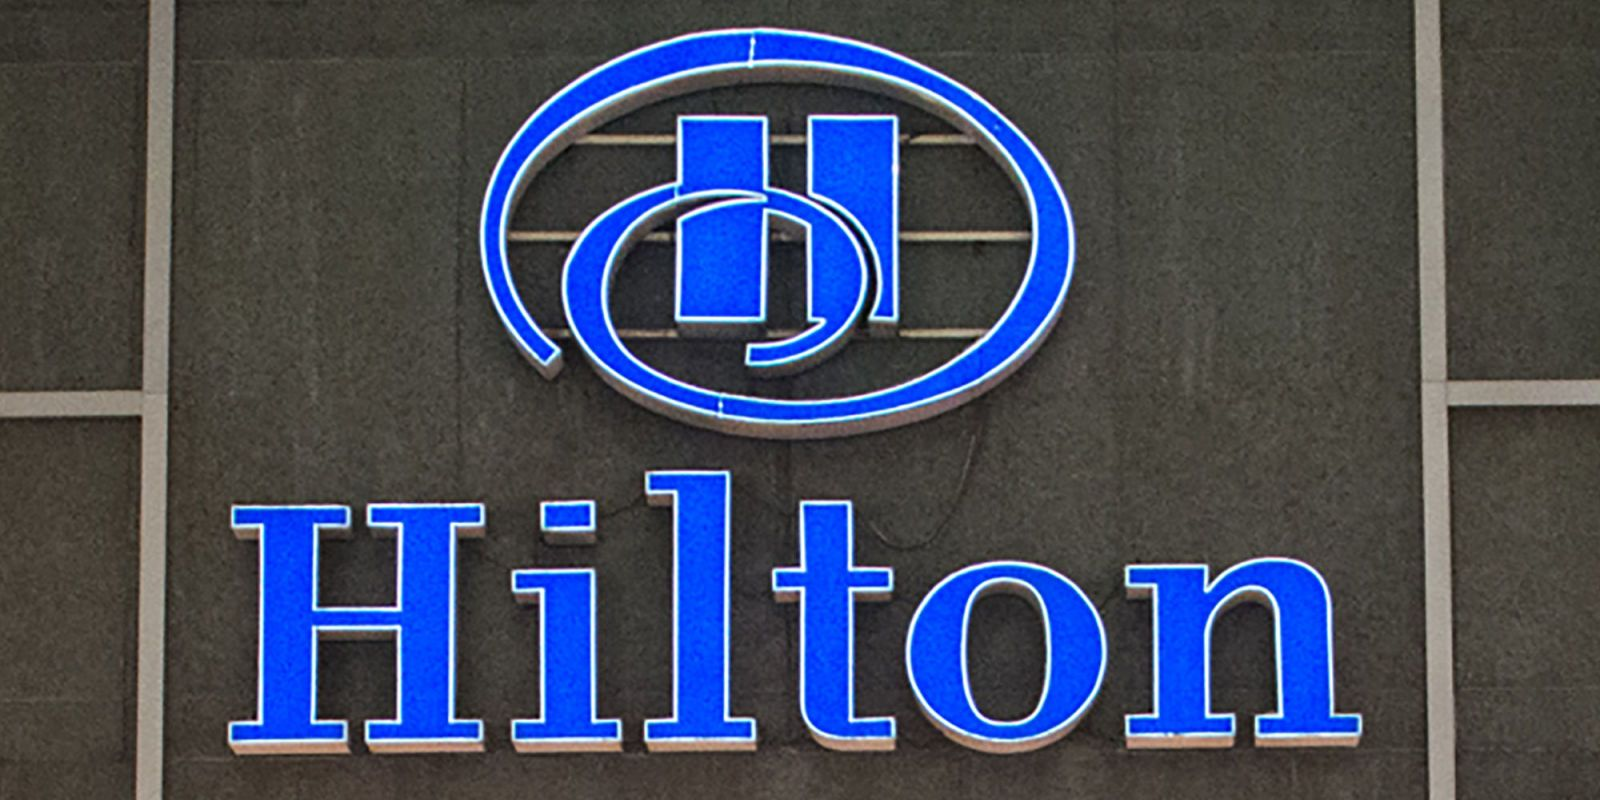 Hilton Is Hiring Work-From-Home Positions in 29 States